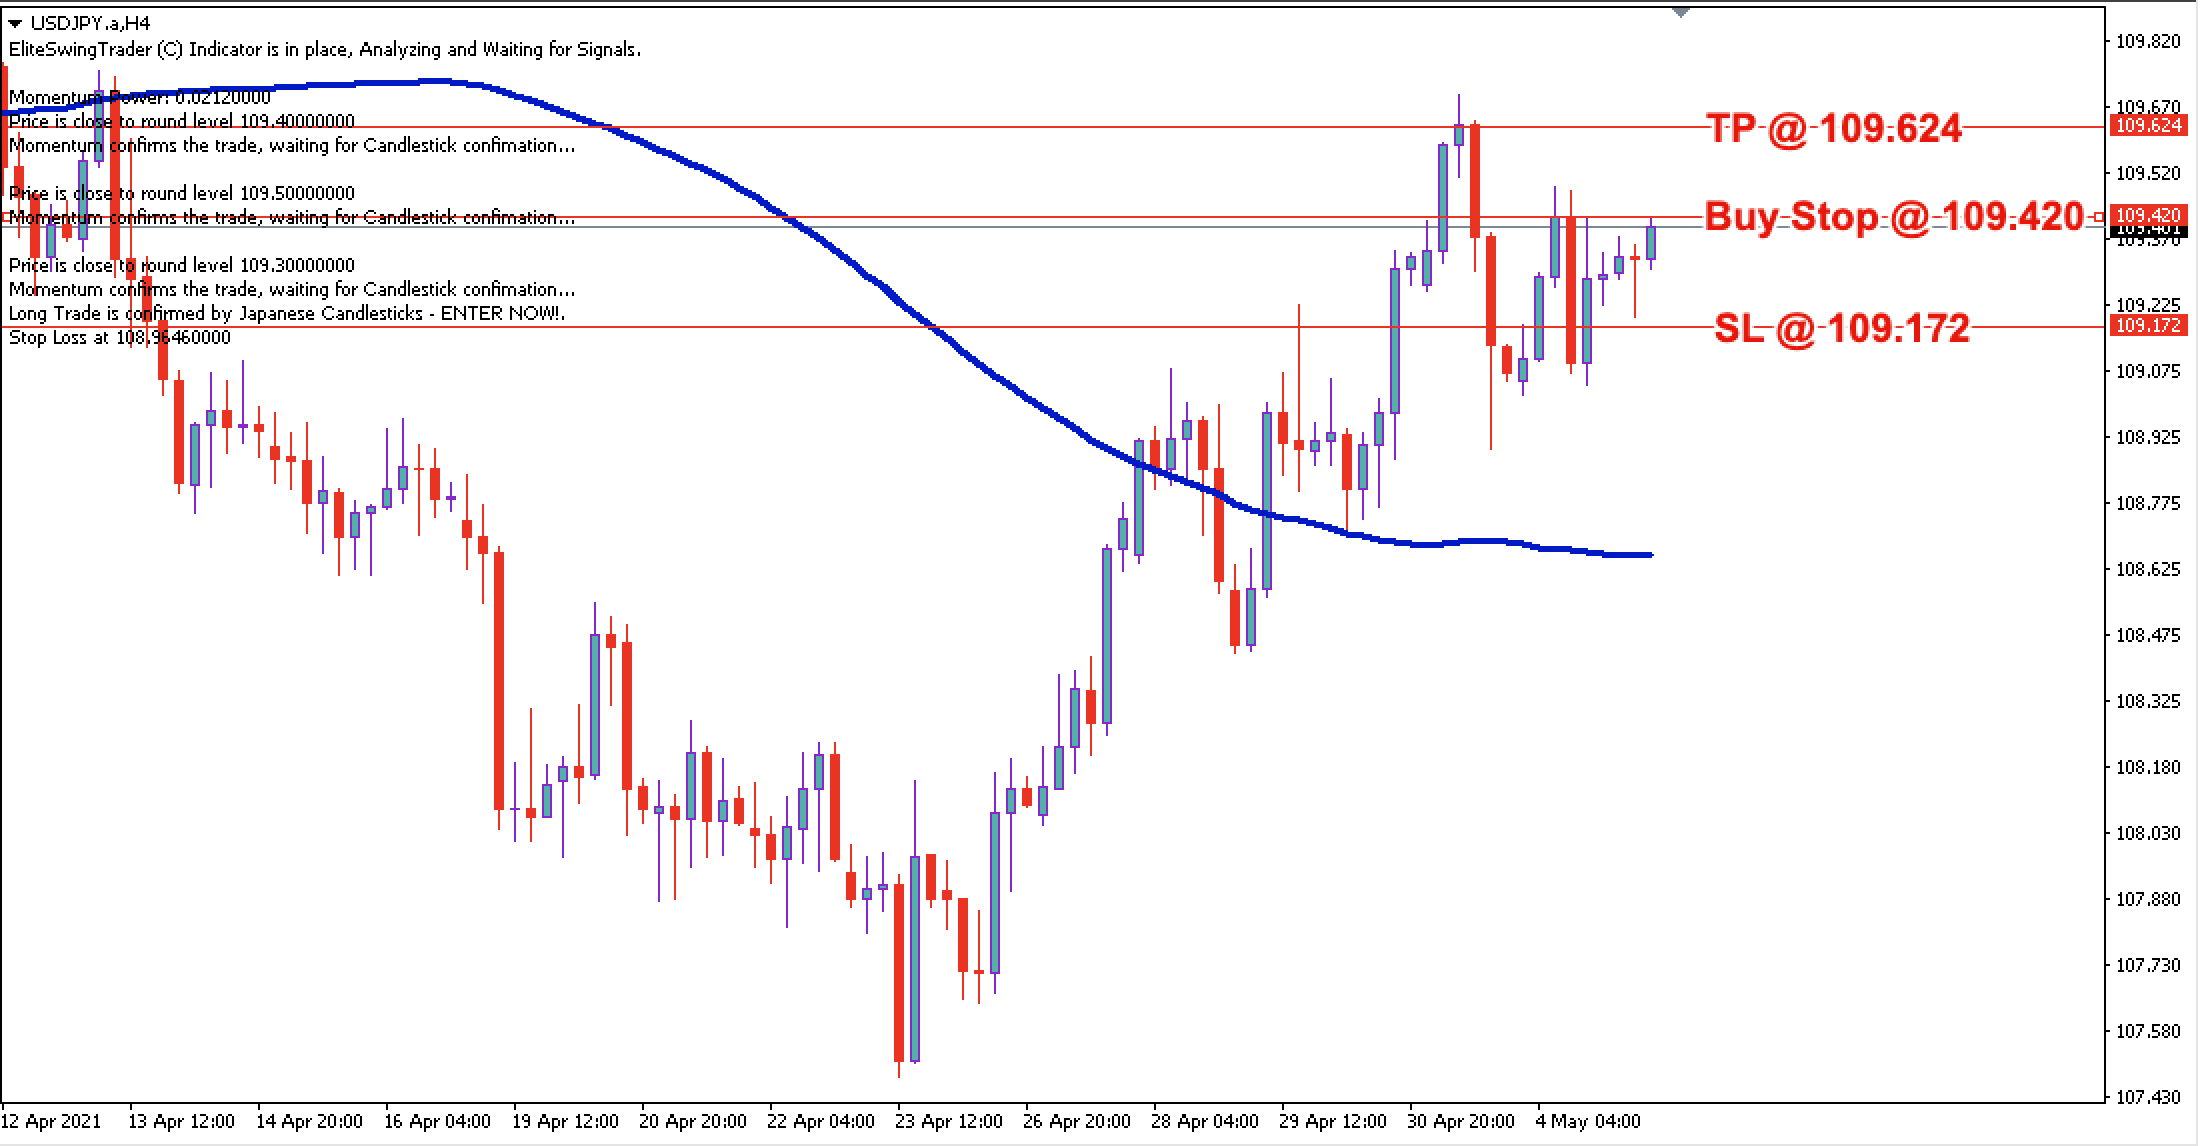 USD/JPY Daily Price Forecast – 5th May 2021